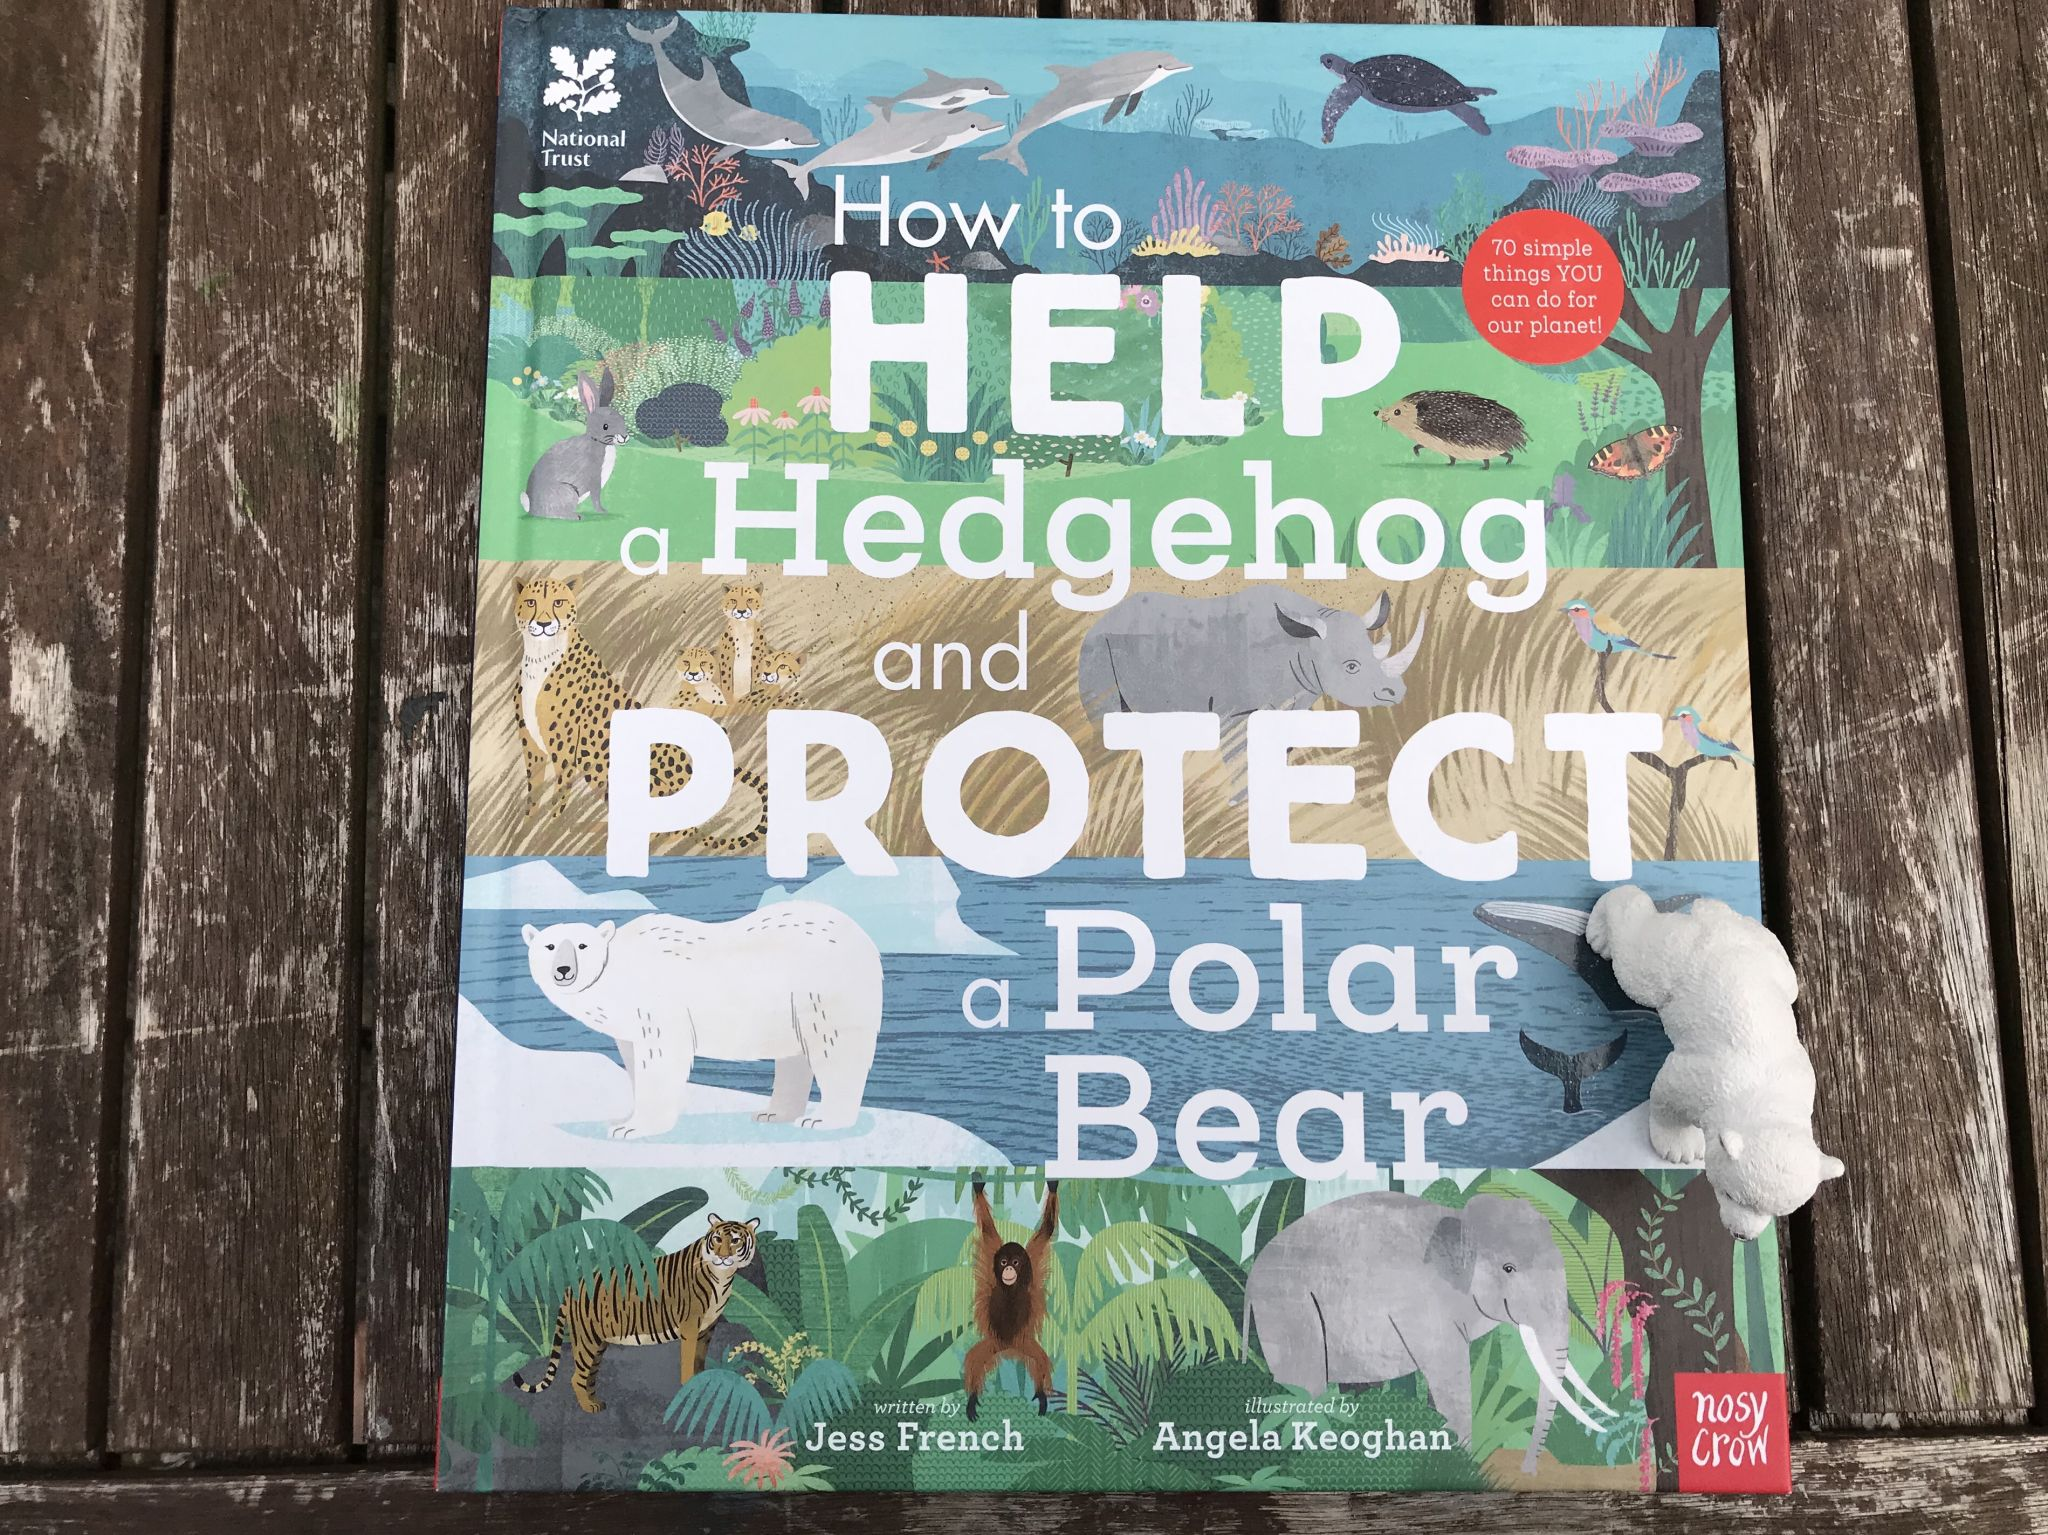 The book how to help a hedgehog and protect a polar bear